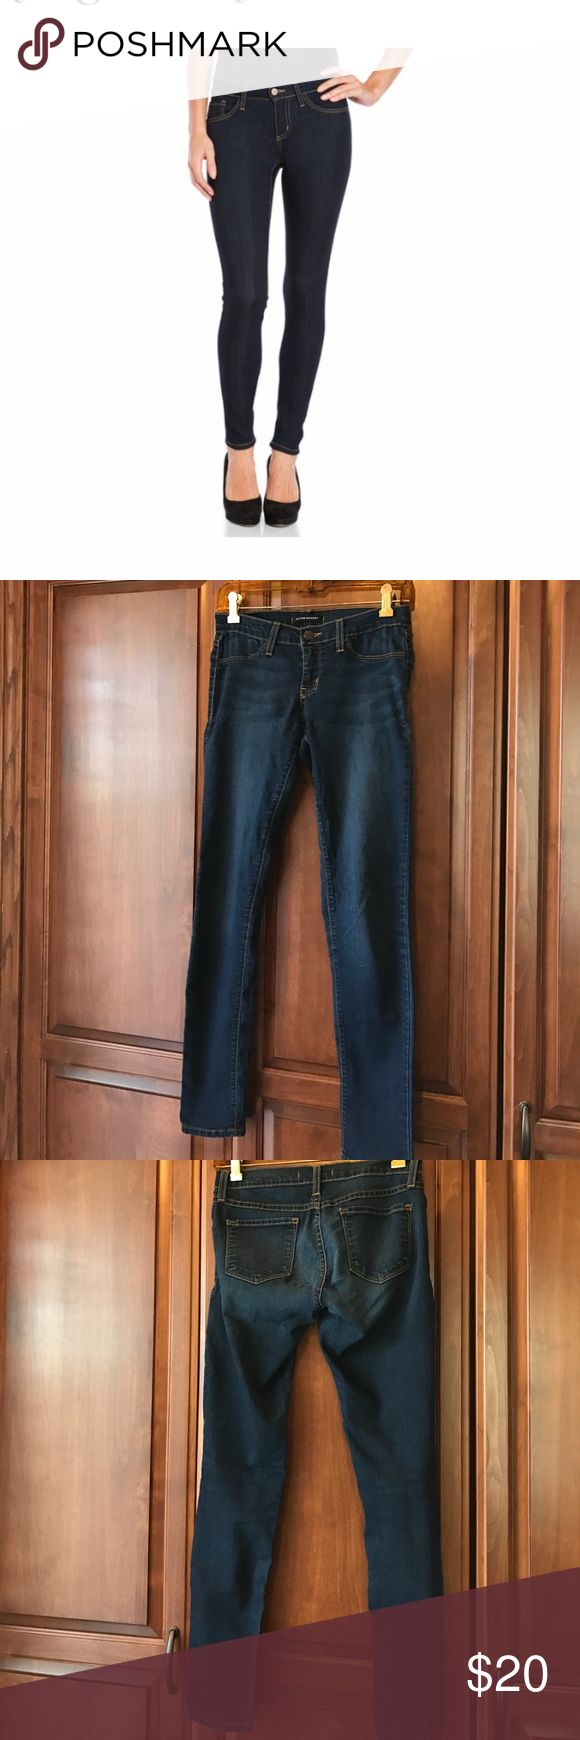 Flying Monkey Dark Rinse Skinny Jeans 💙 Cute style. Low rise. Perfect condition 71 cotton/27 poly/2 spandex. There is some stretch 💙 flying monkey Jeans Skinny